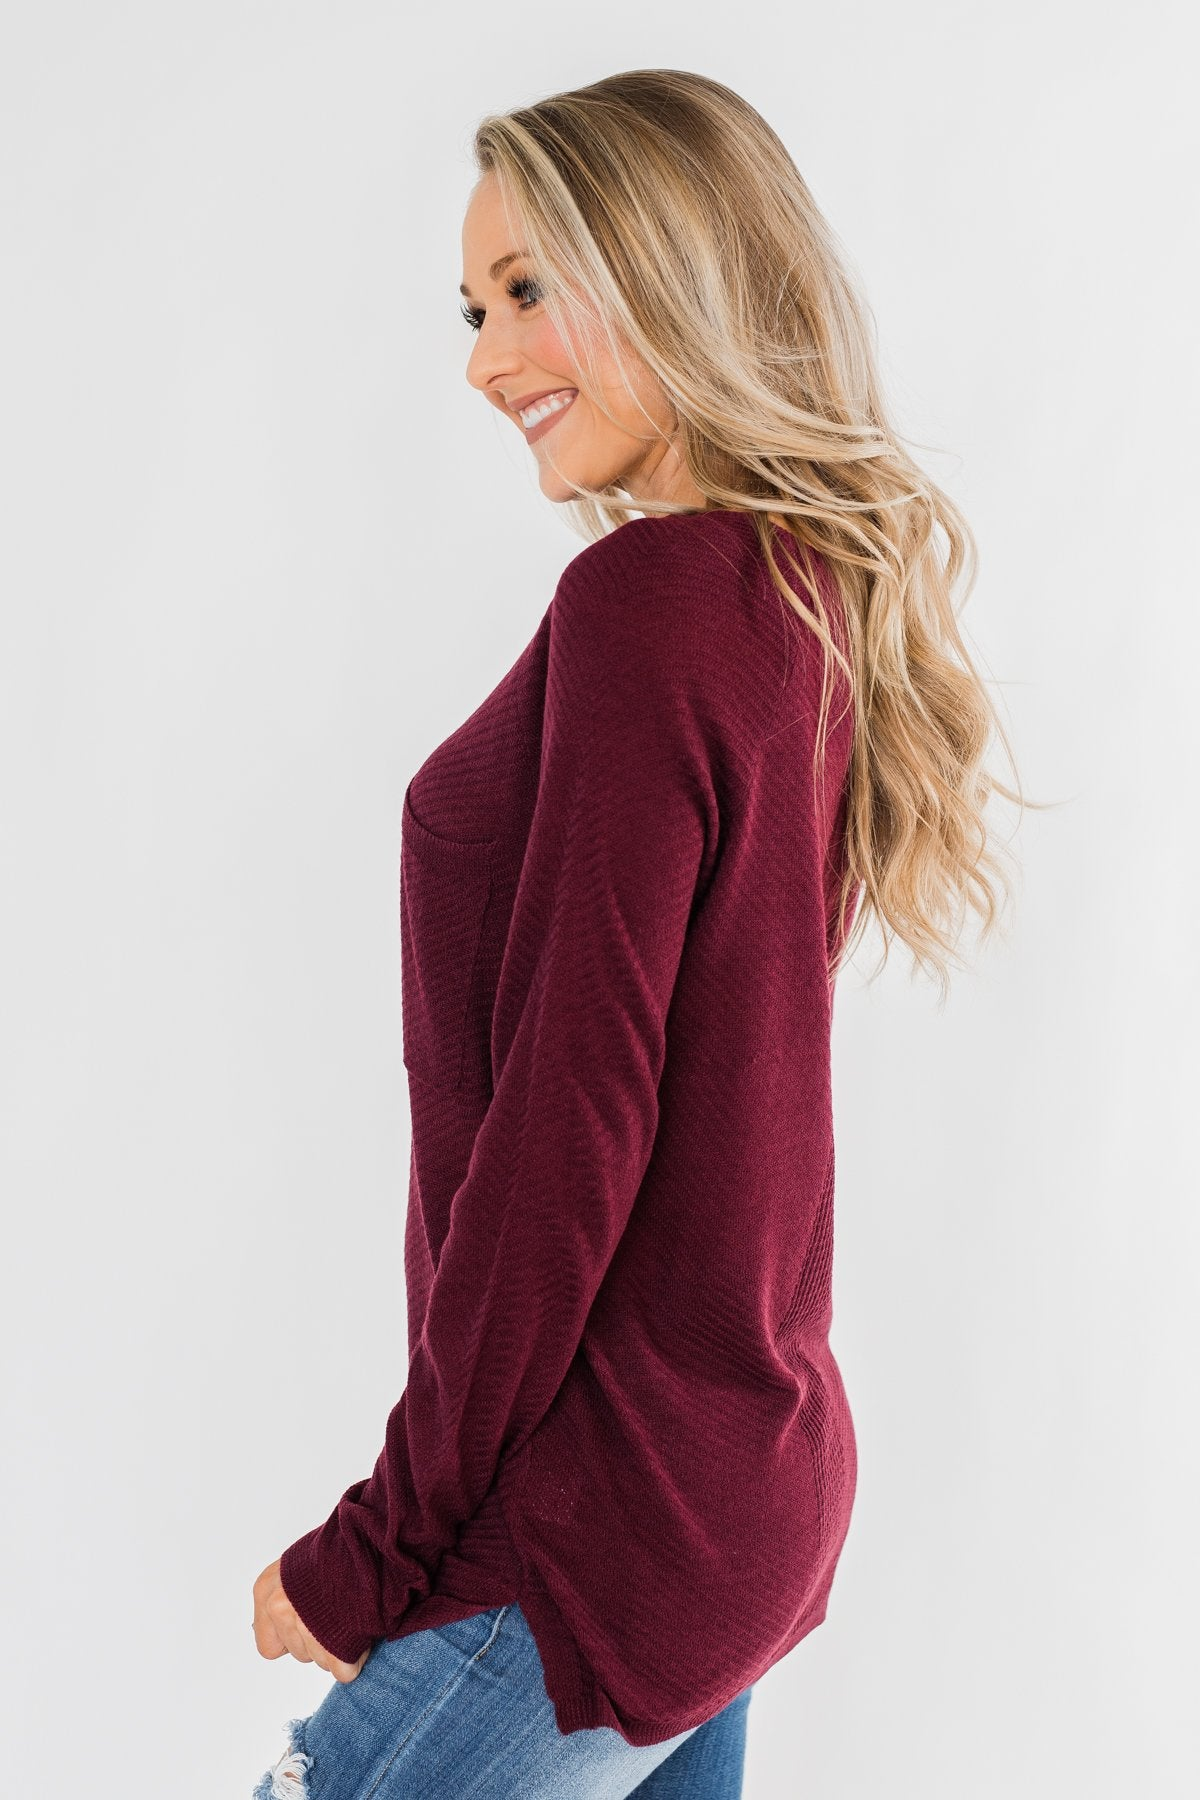 Spread The Love Knit Sweater- Burgundy